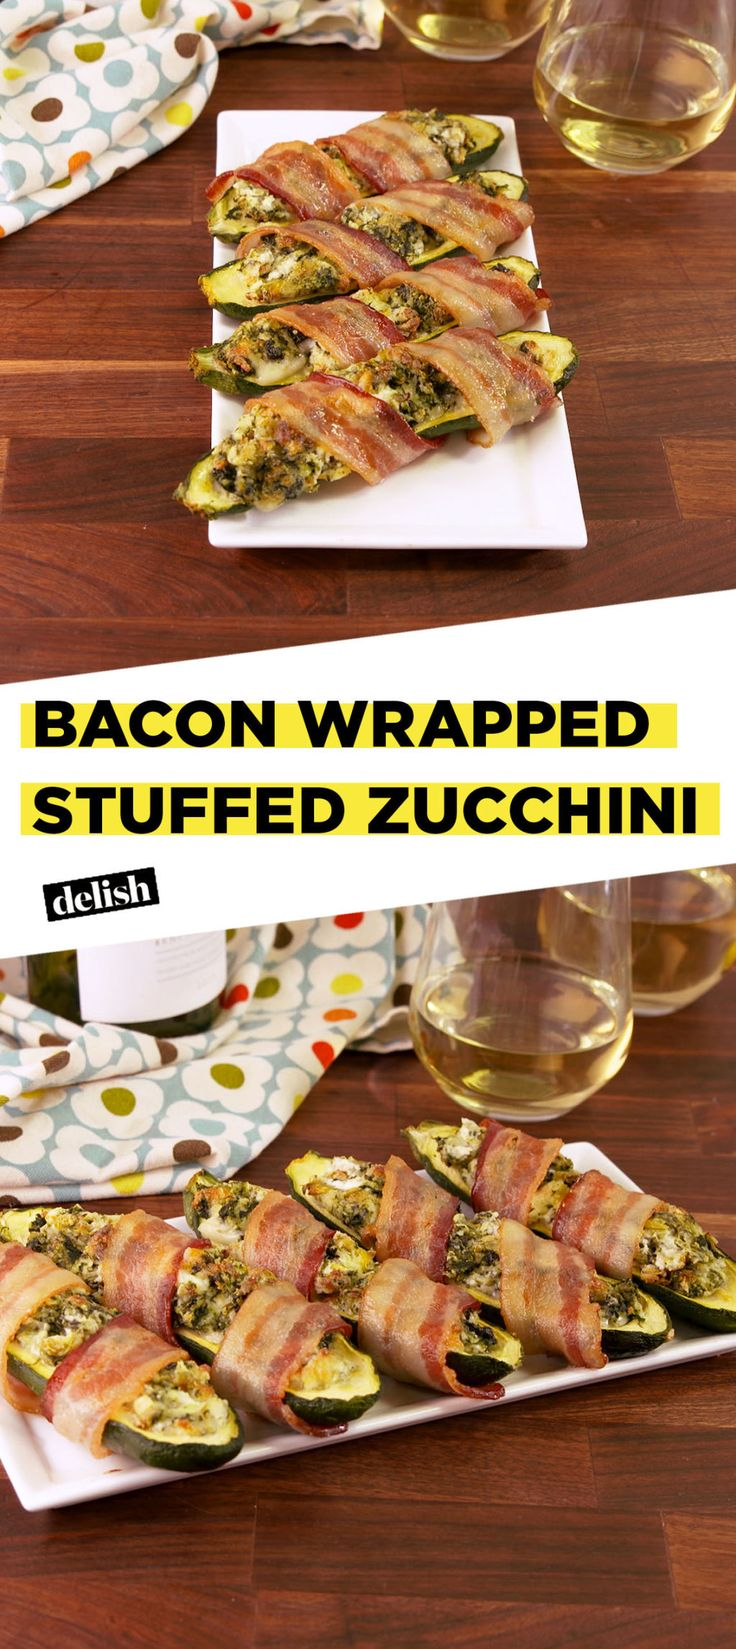 We're Crazy About Bacon Wrapped Stuffed Zucchini - Delish.com